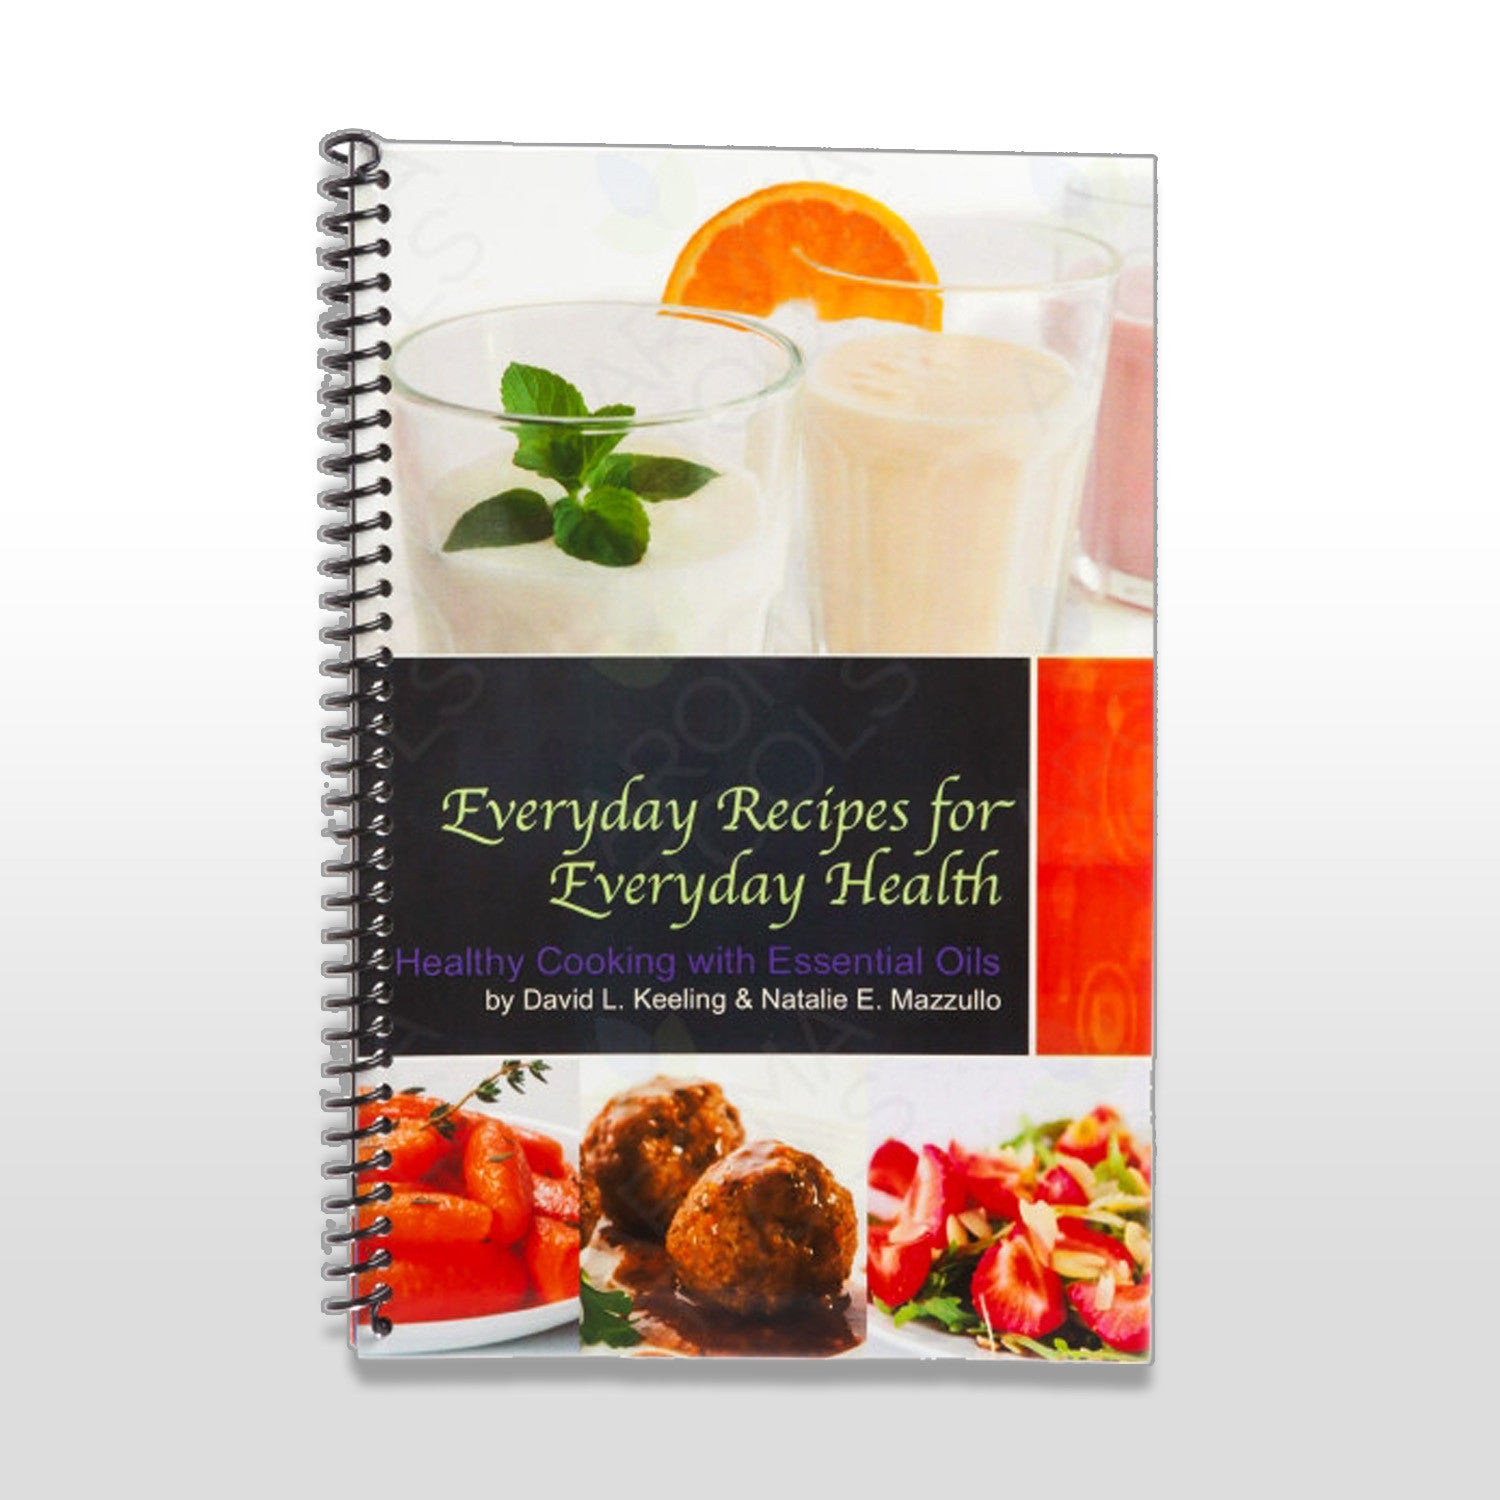 Everyday Recipes for Everyday Health